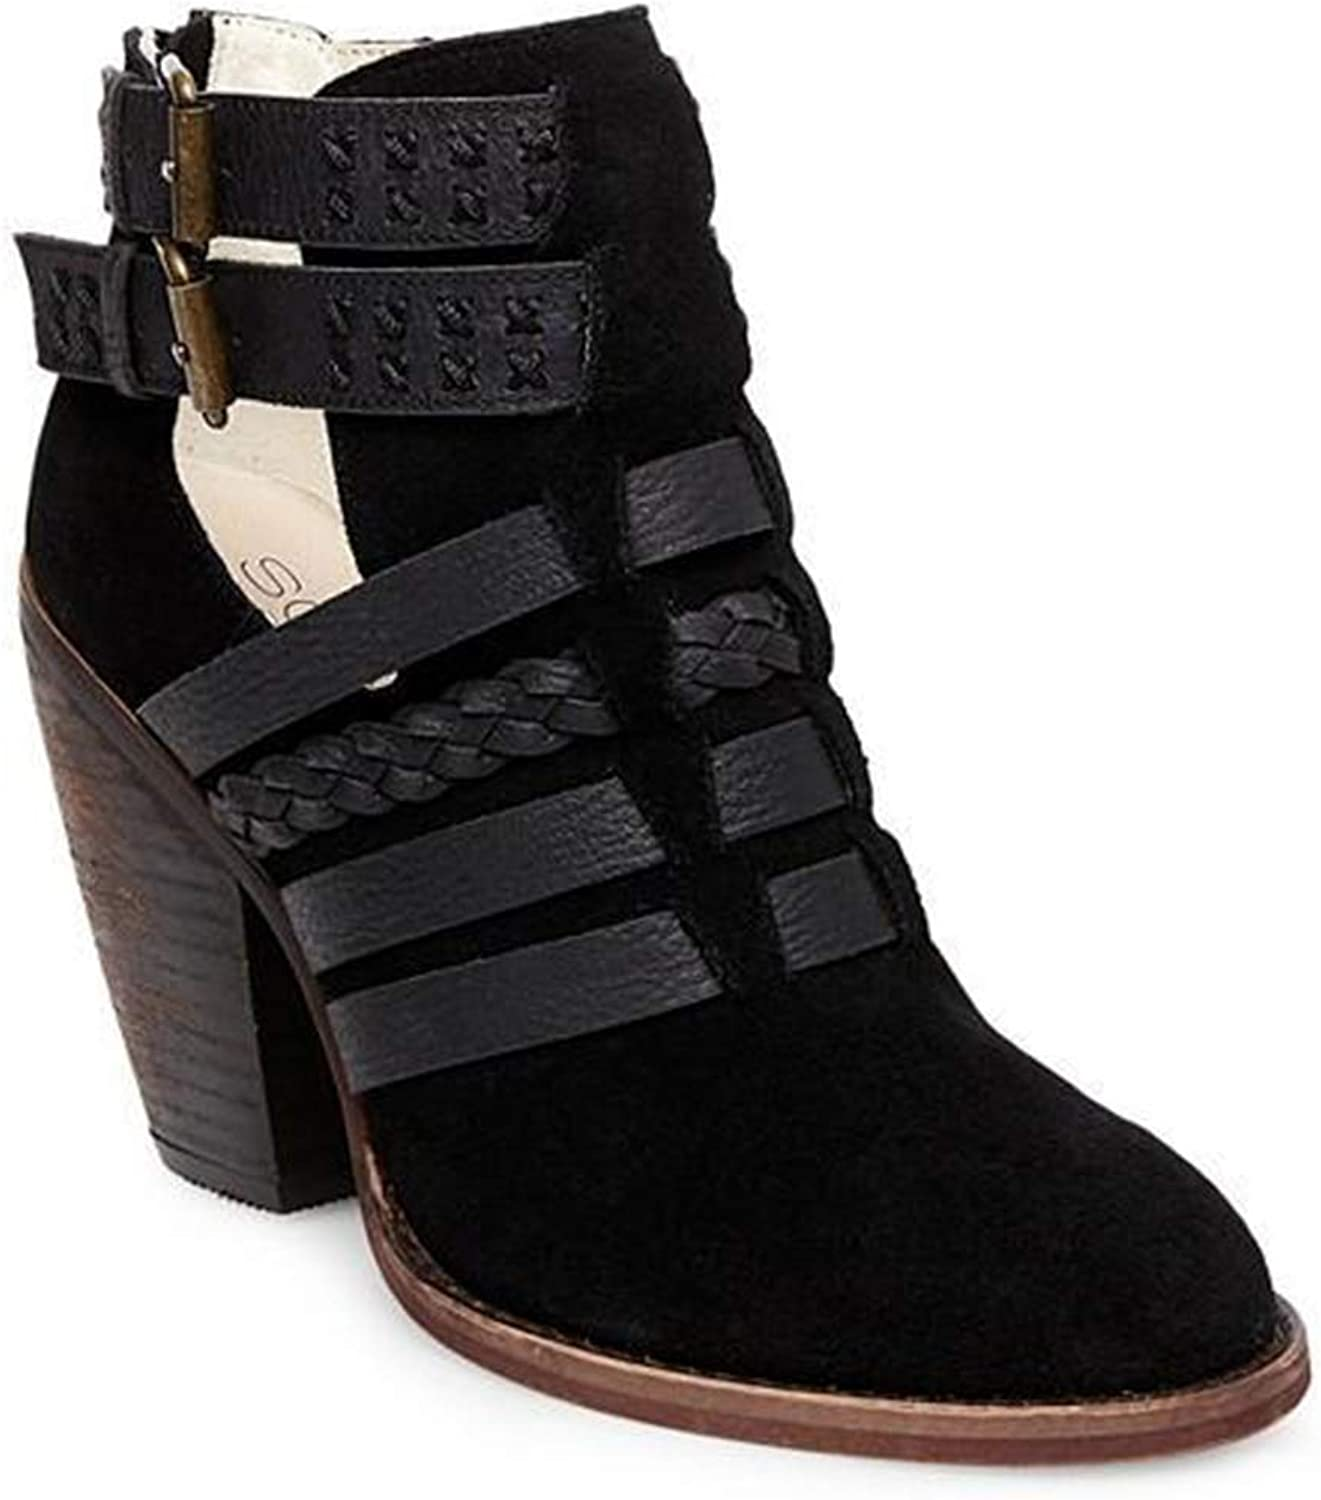 Soho Cobbler Eliat Strappy Leather and Suede Booties Black